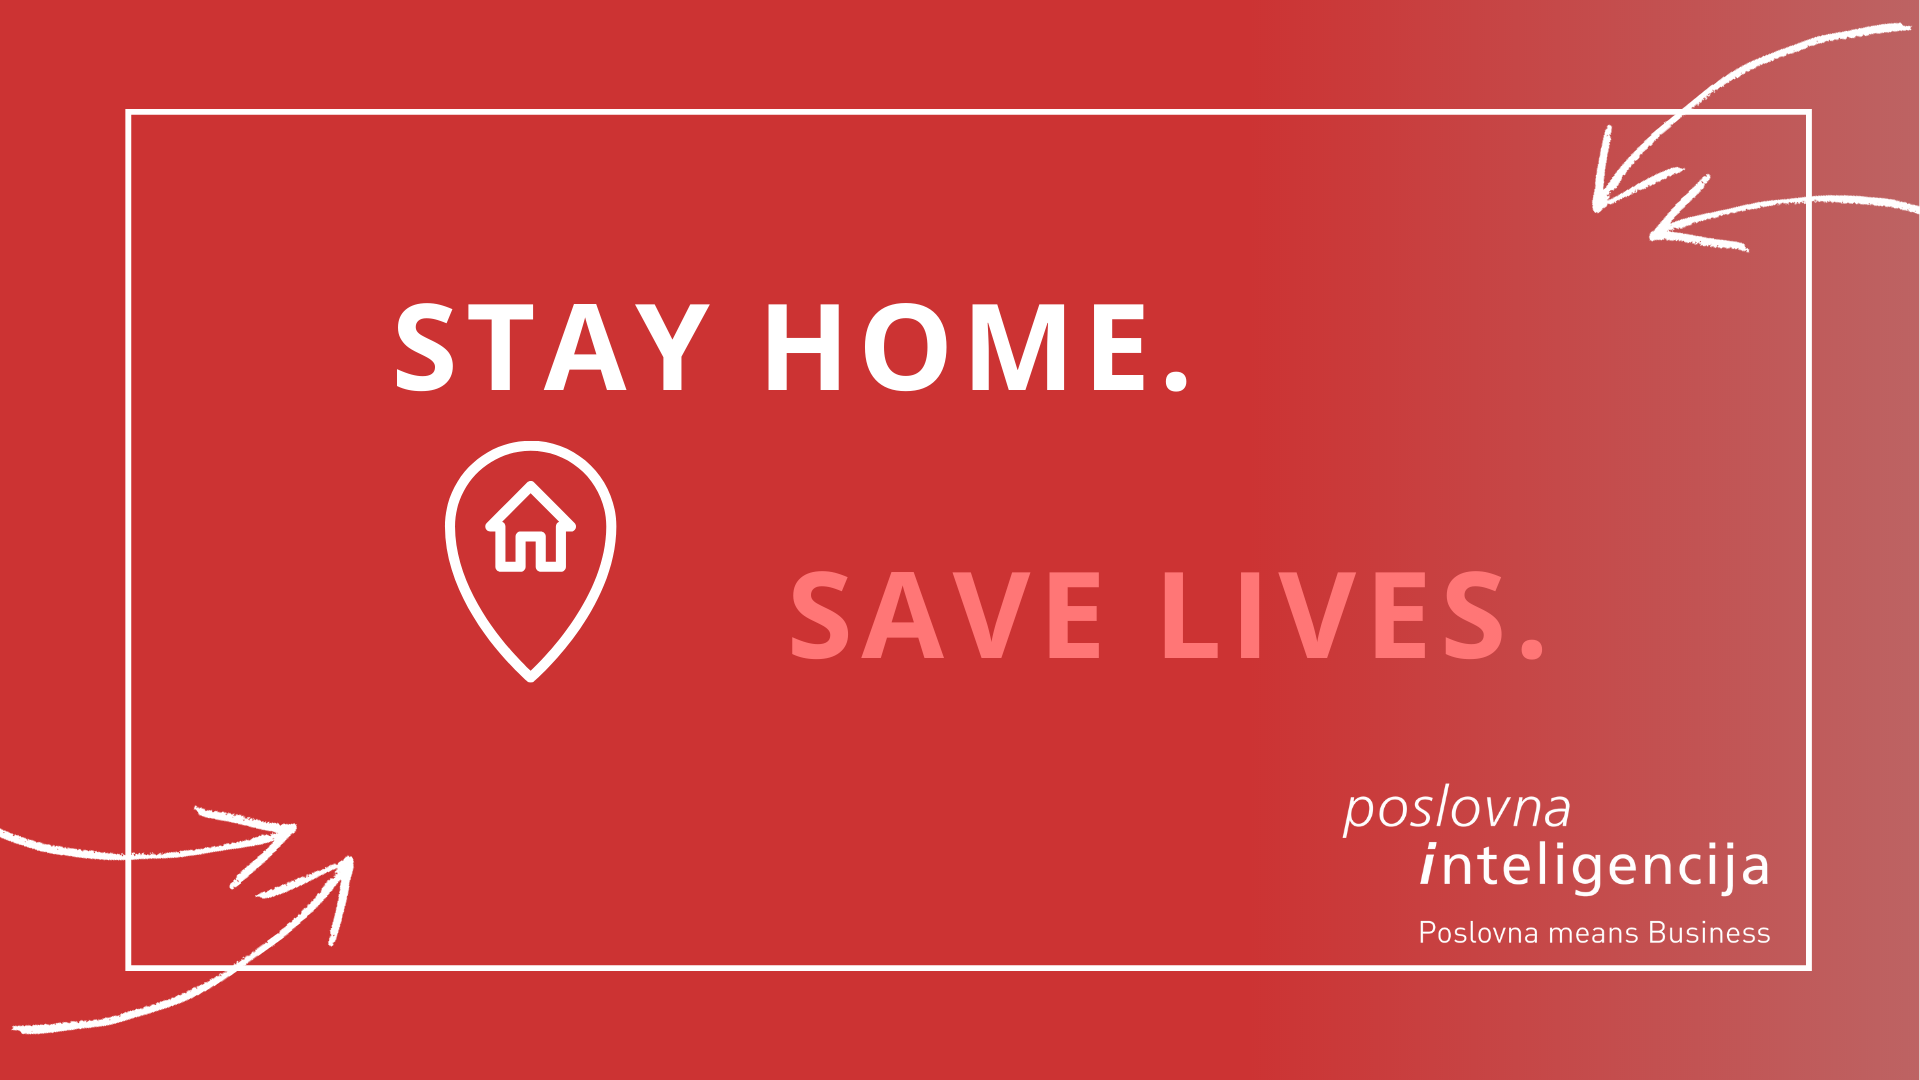 Poslovna inteligencija - stay home save lives - corona